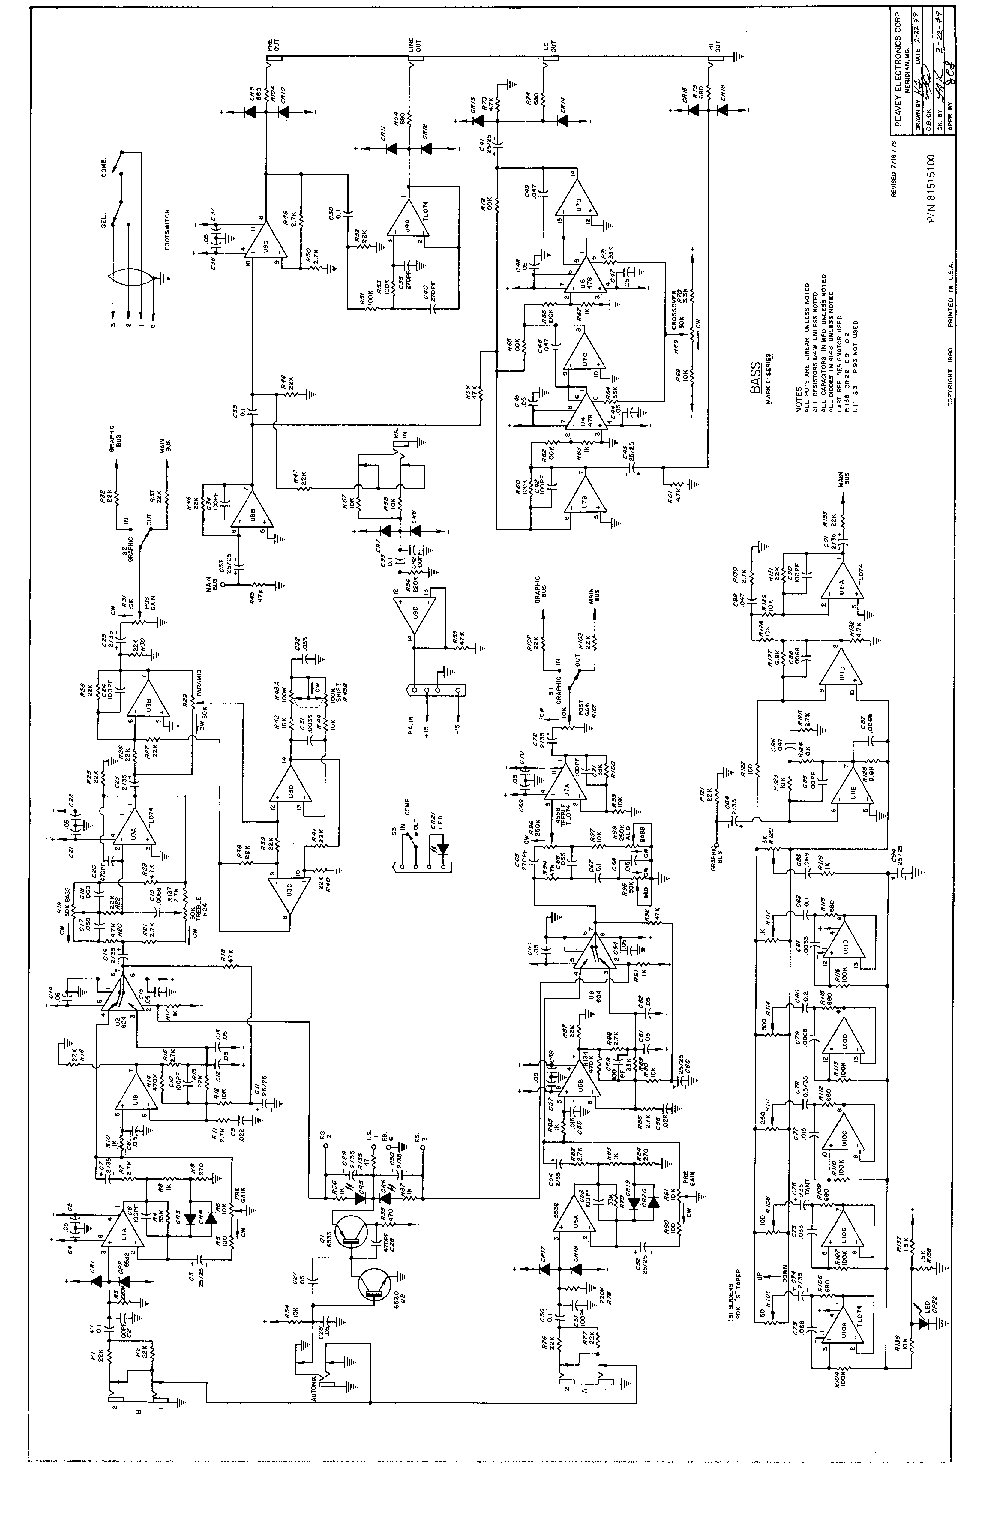 peavey subwoofer wiring diagram with 4x12 Wiring Diagram on 7C 7Celektrotanya   7CPREVIEWS 7C63463243 7C23432455 7Cpeavey 7Cpeavey pv 2000 pdf 1 furthermore Peavey Power  s together with Series Parallel Wiring Diagram furthermore Series Speaker Crossover Wiring Diagram further 100 Ohm Platinum Wiring Diagram.